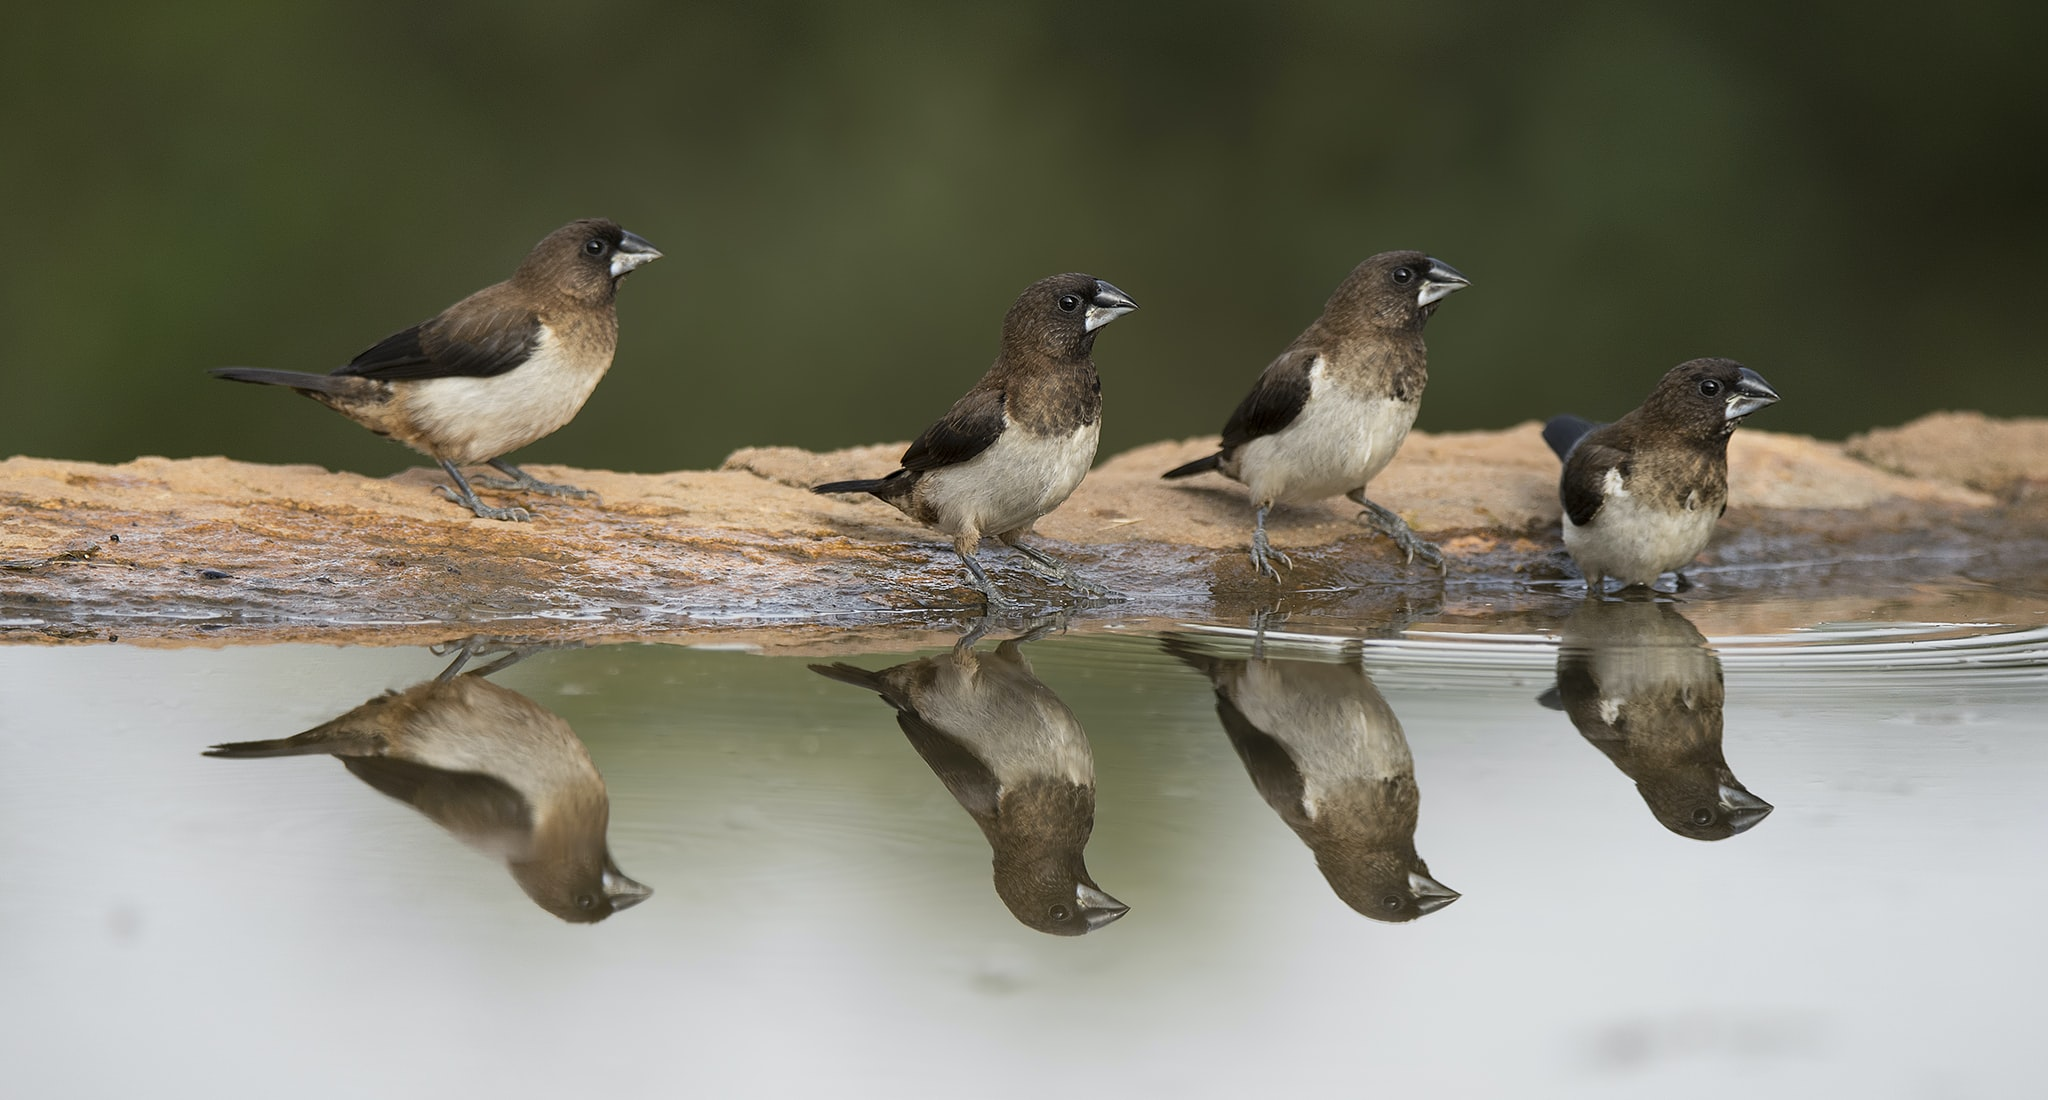 Four sparrows in a row beside a puddle looking on the side sitting on a rock edge